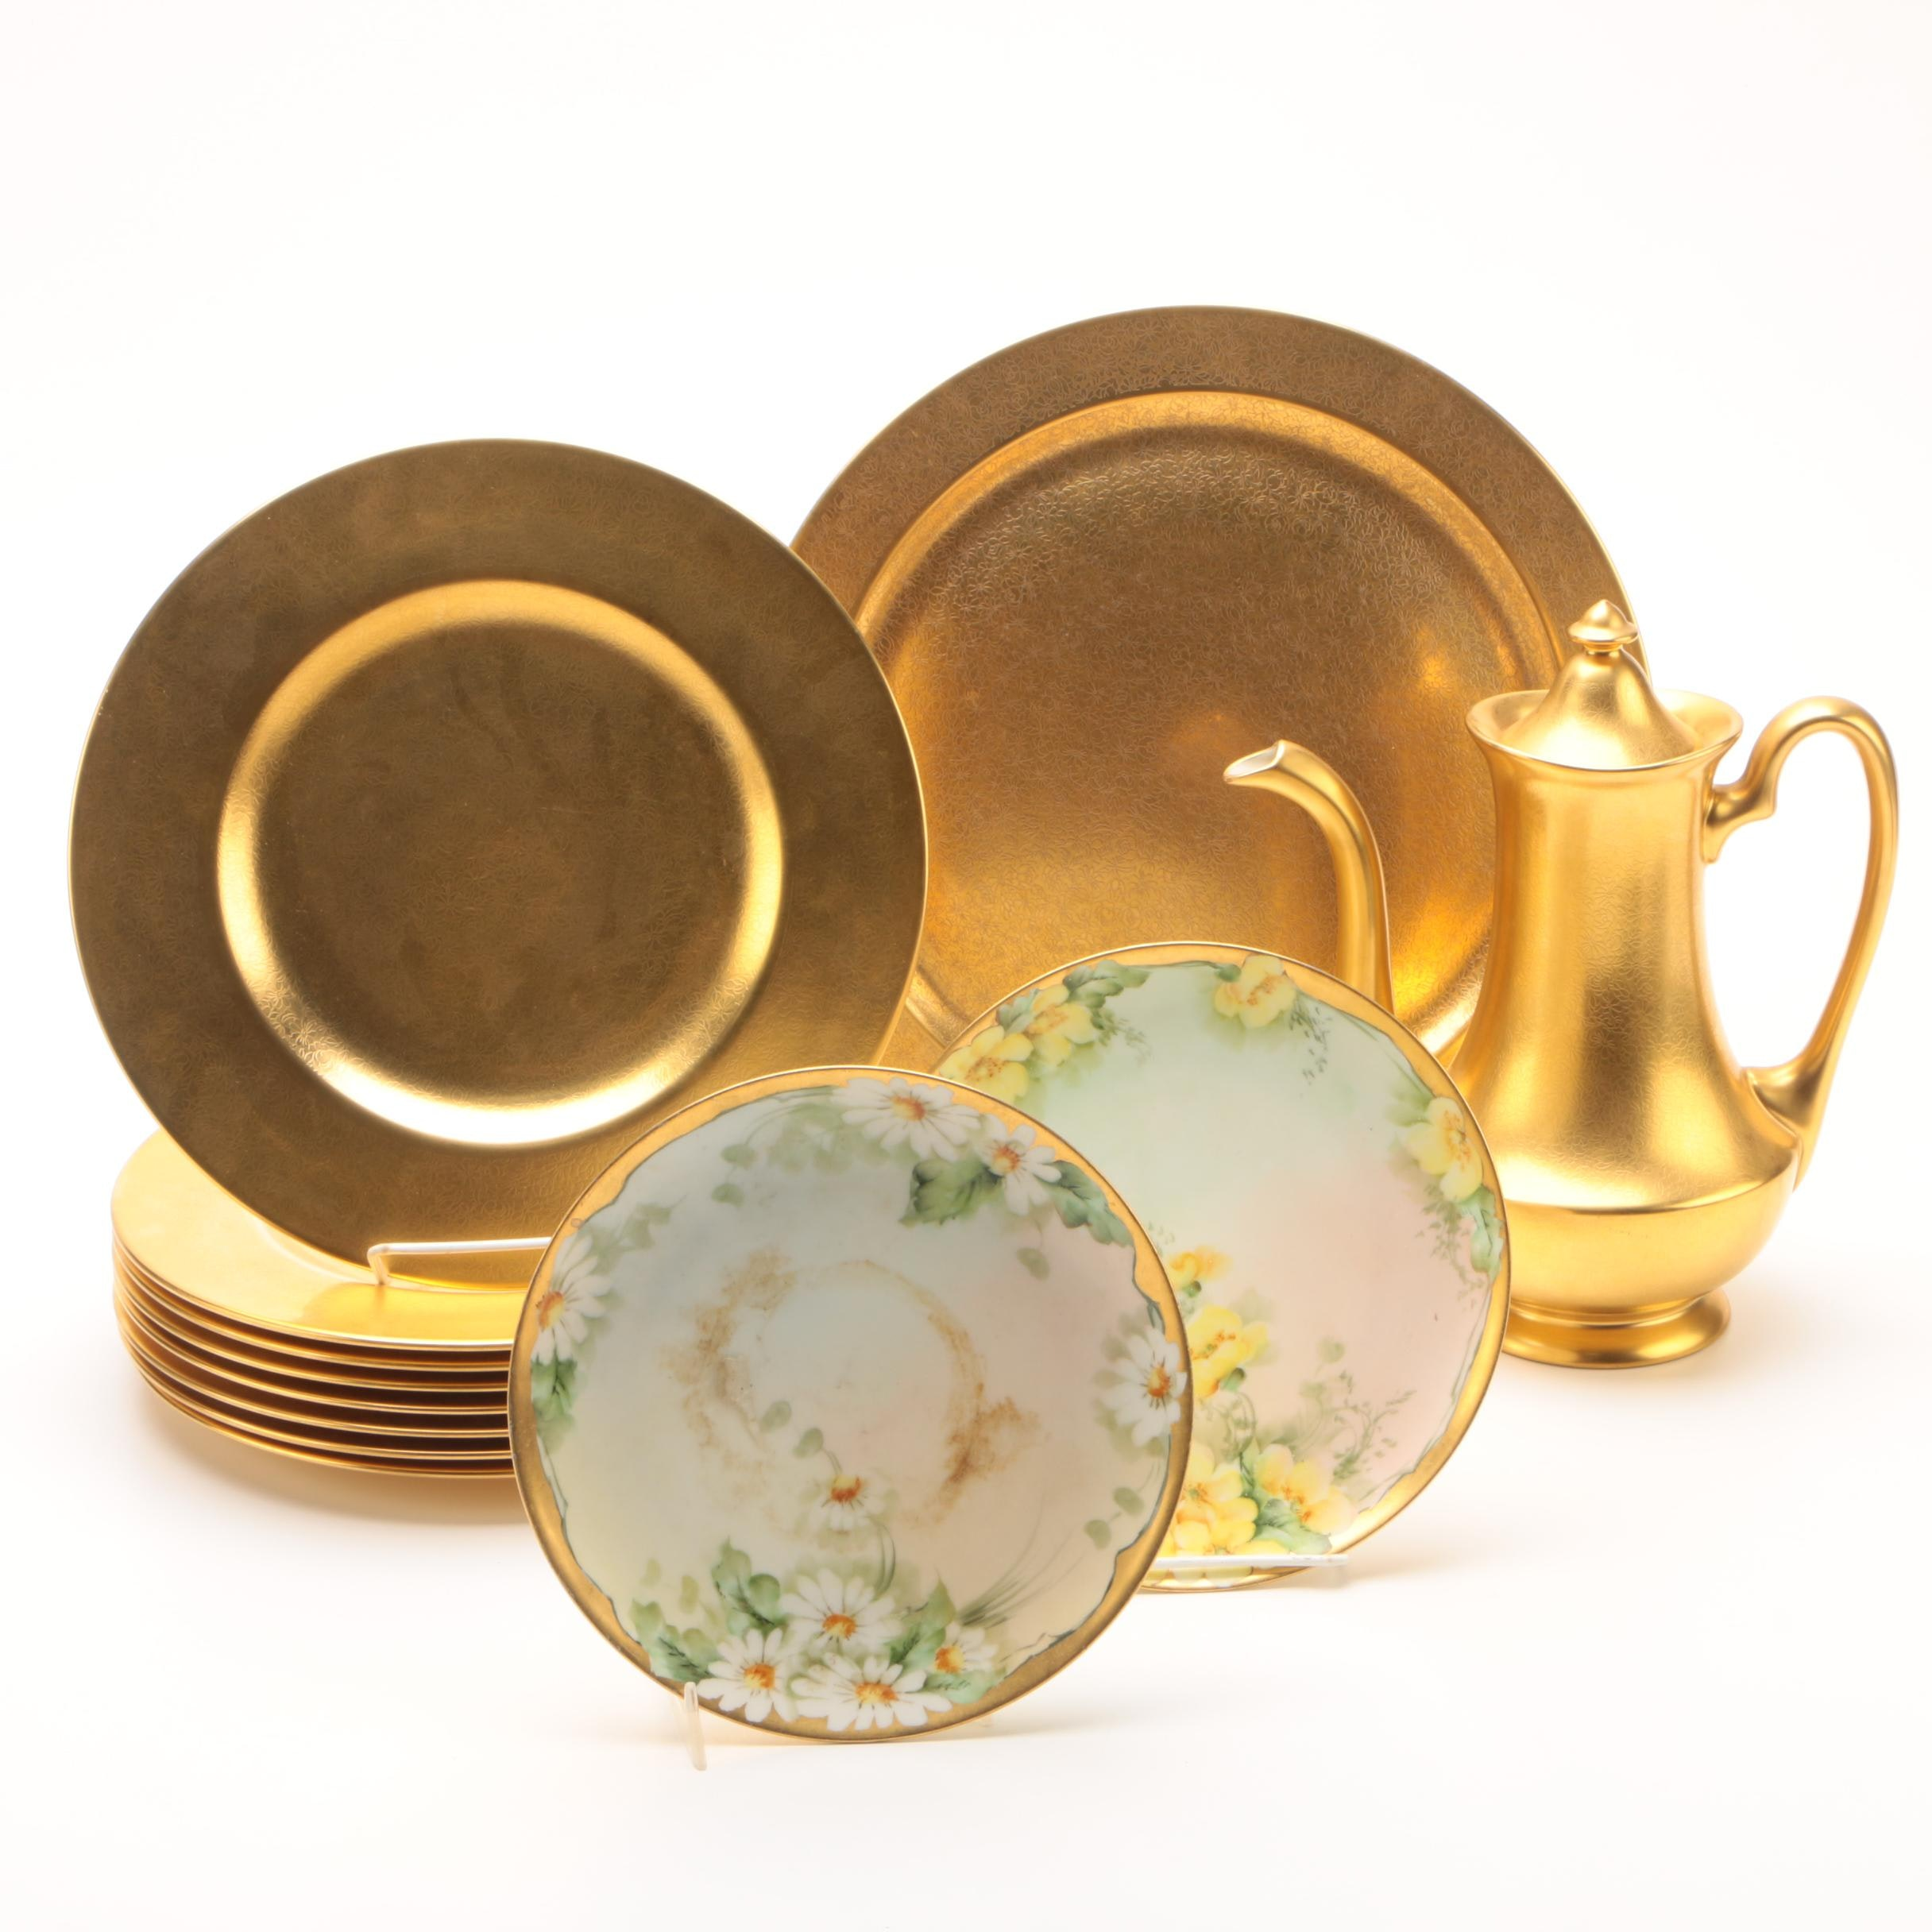 Gold Encrusted Pickard Tableware with Hobbyist Painted Haviland Plates